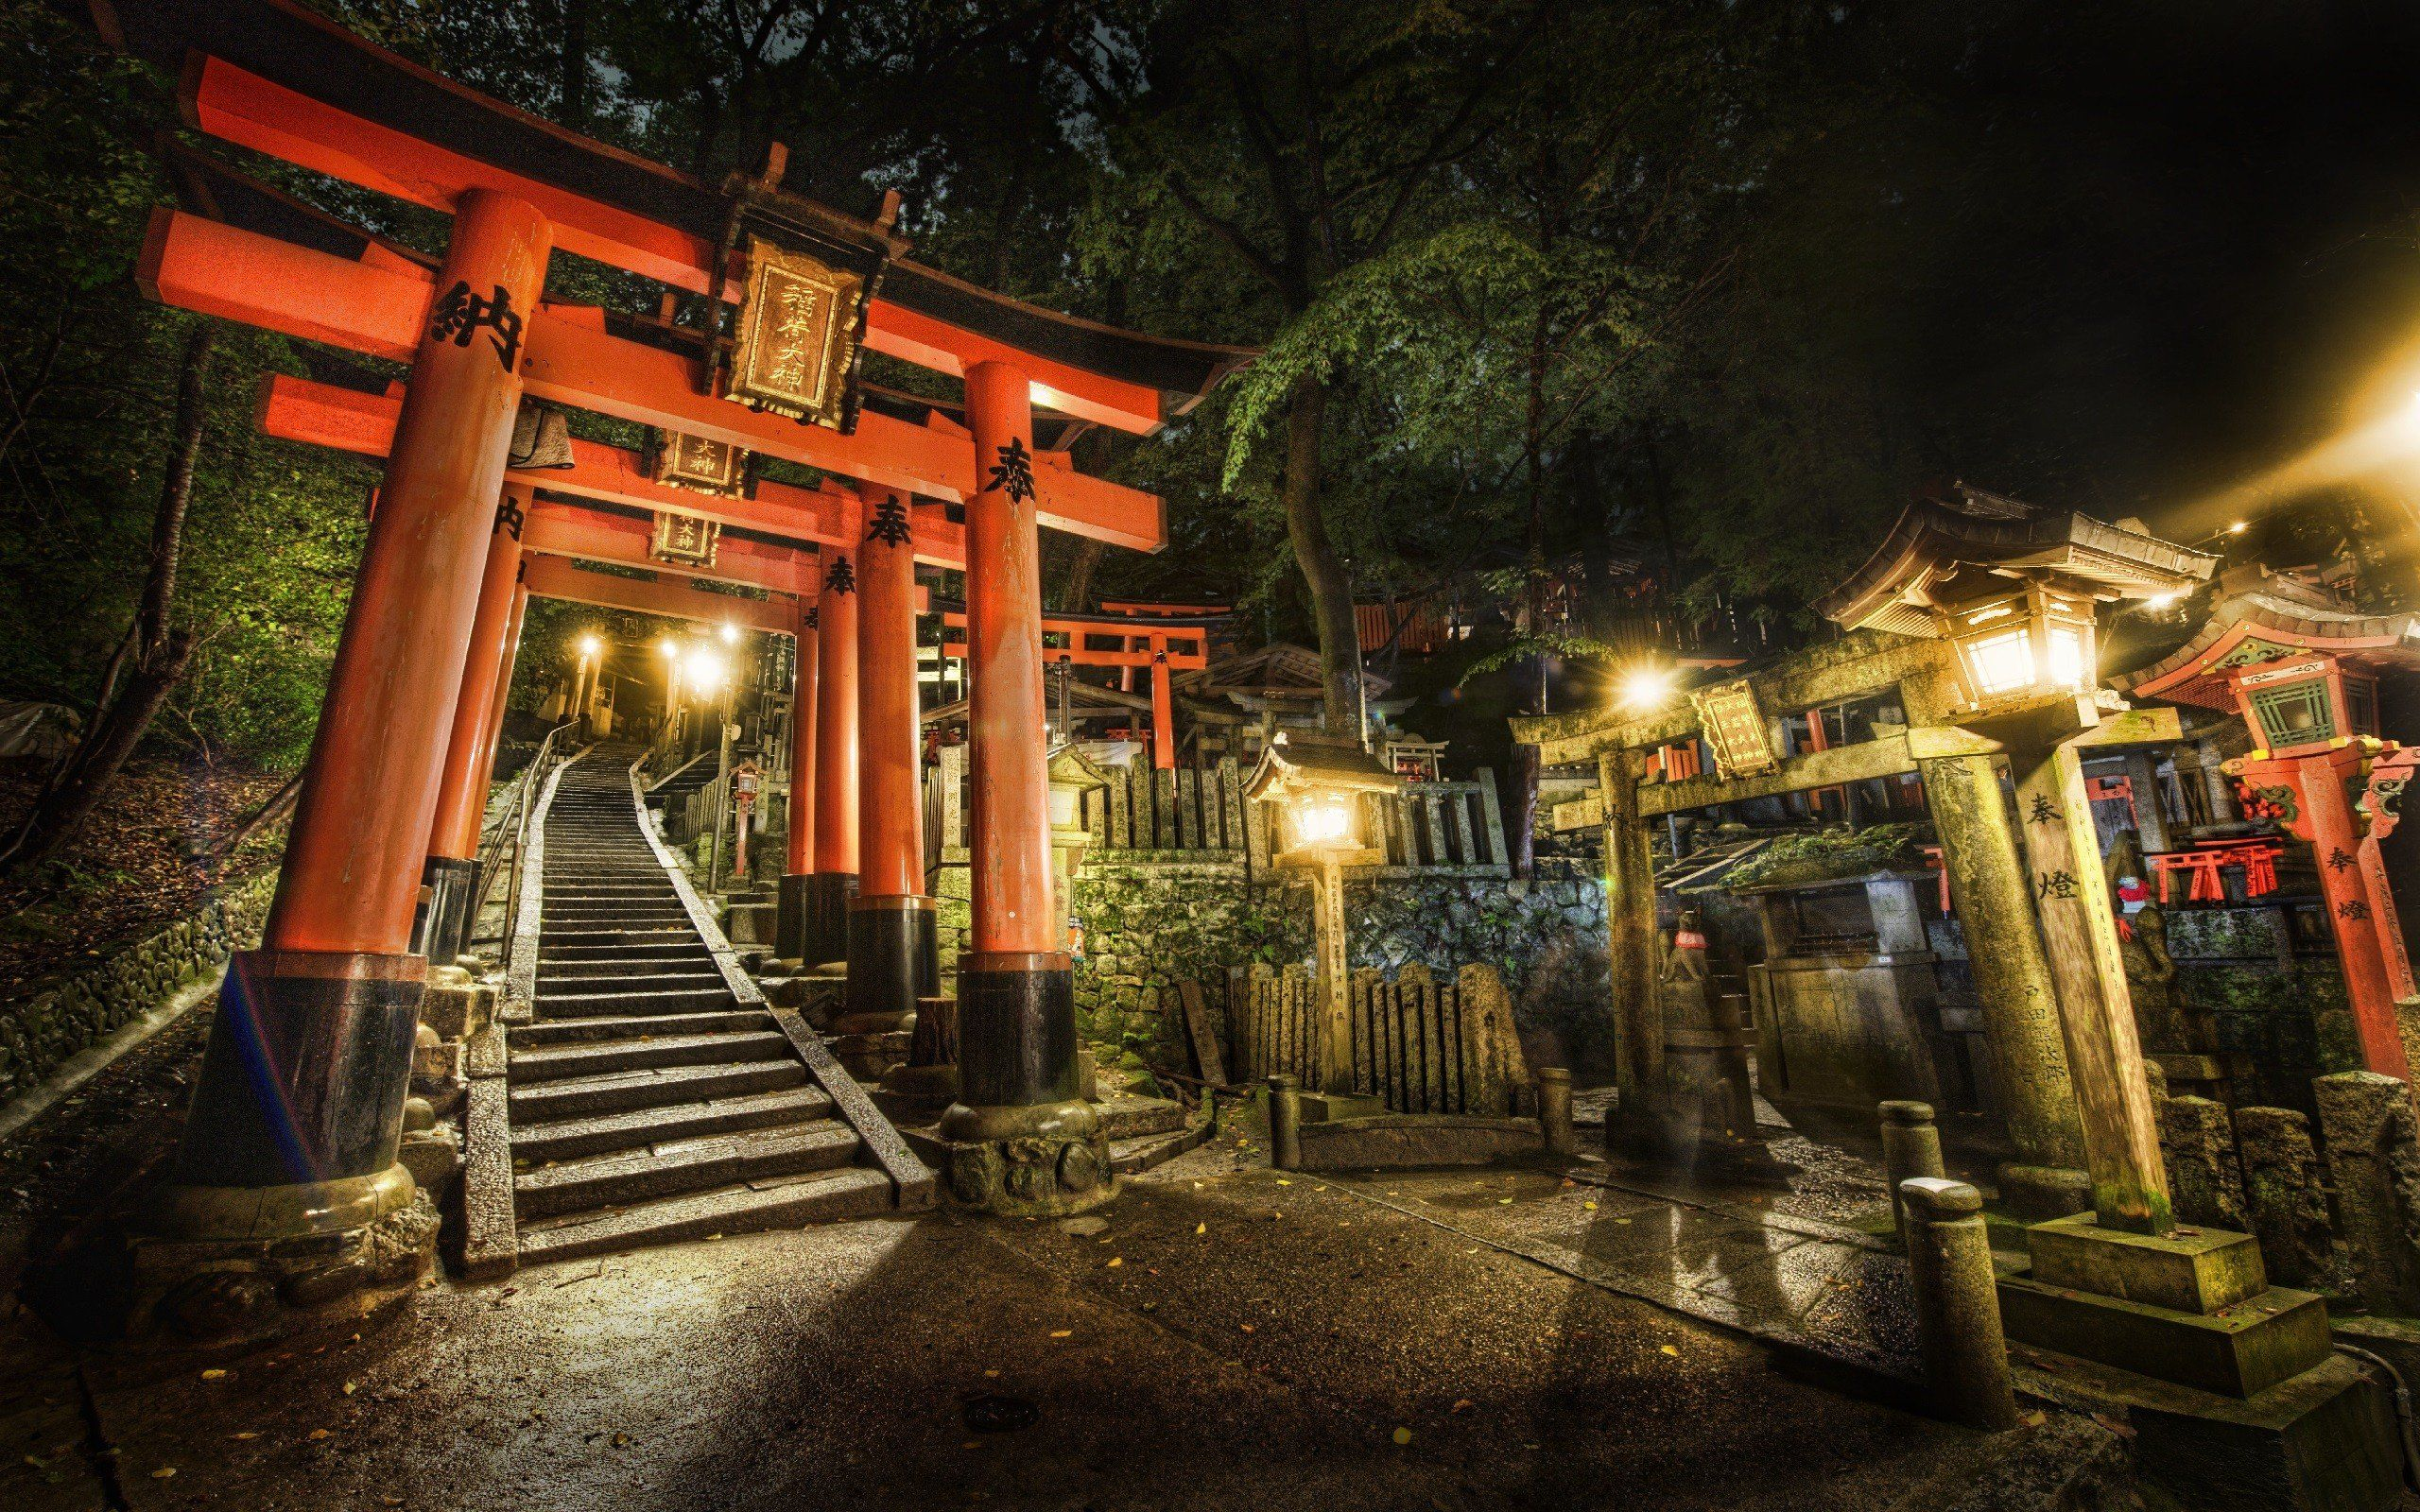 2560x1600 Japan night stairways shrine Kyoto torii cemetery torii gate ...